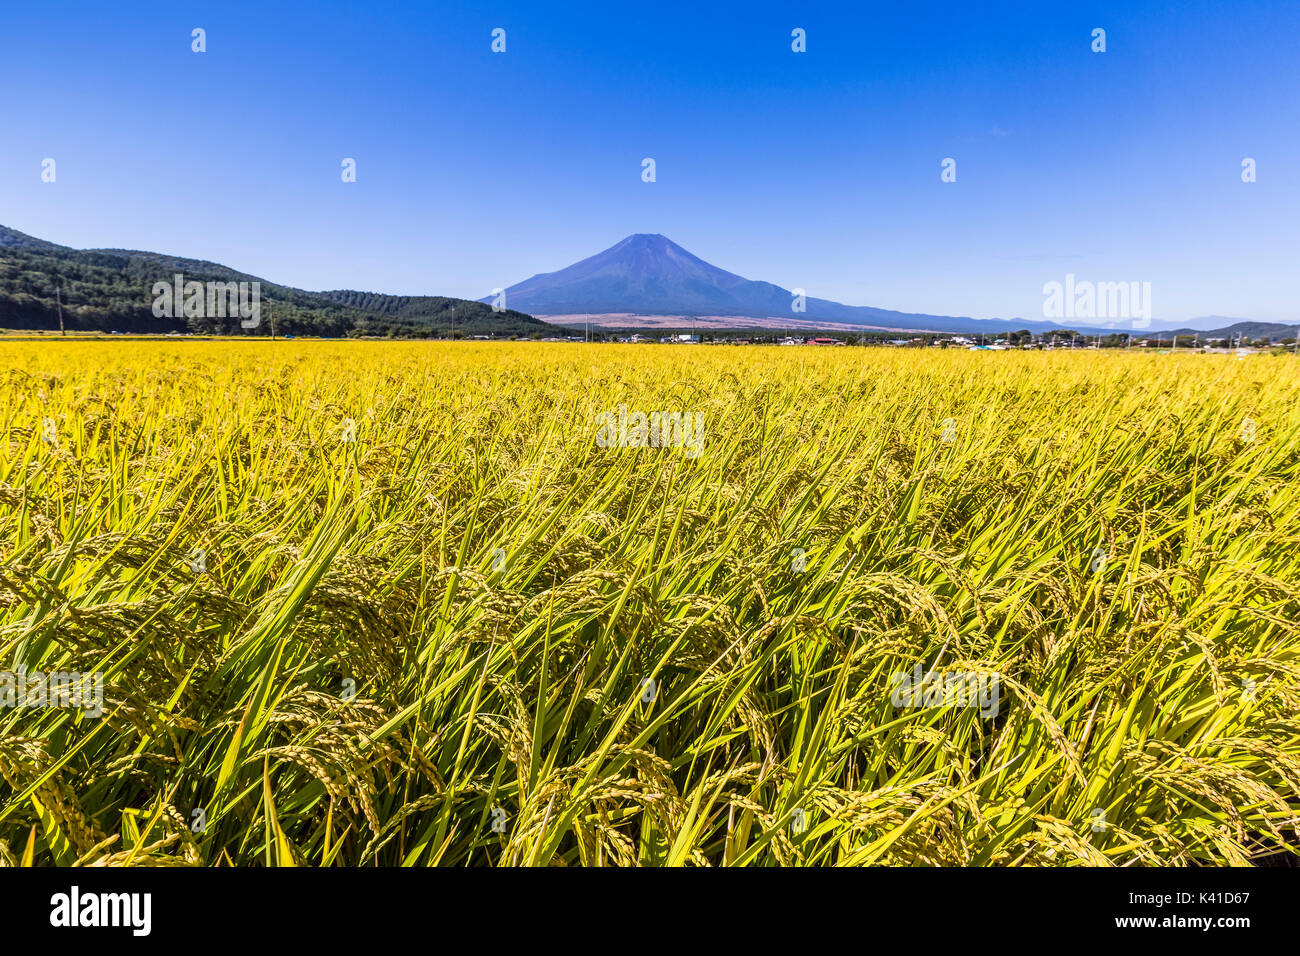 Rice Field and Mt.Fuji in Japan - Stock Image